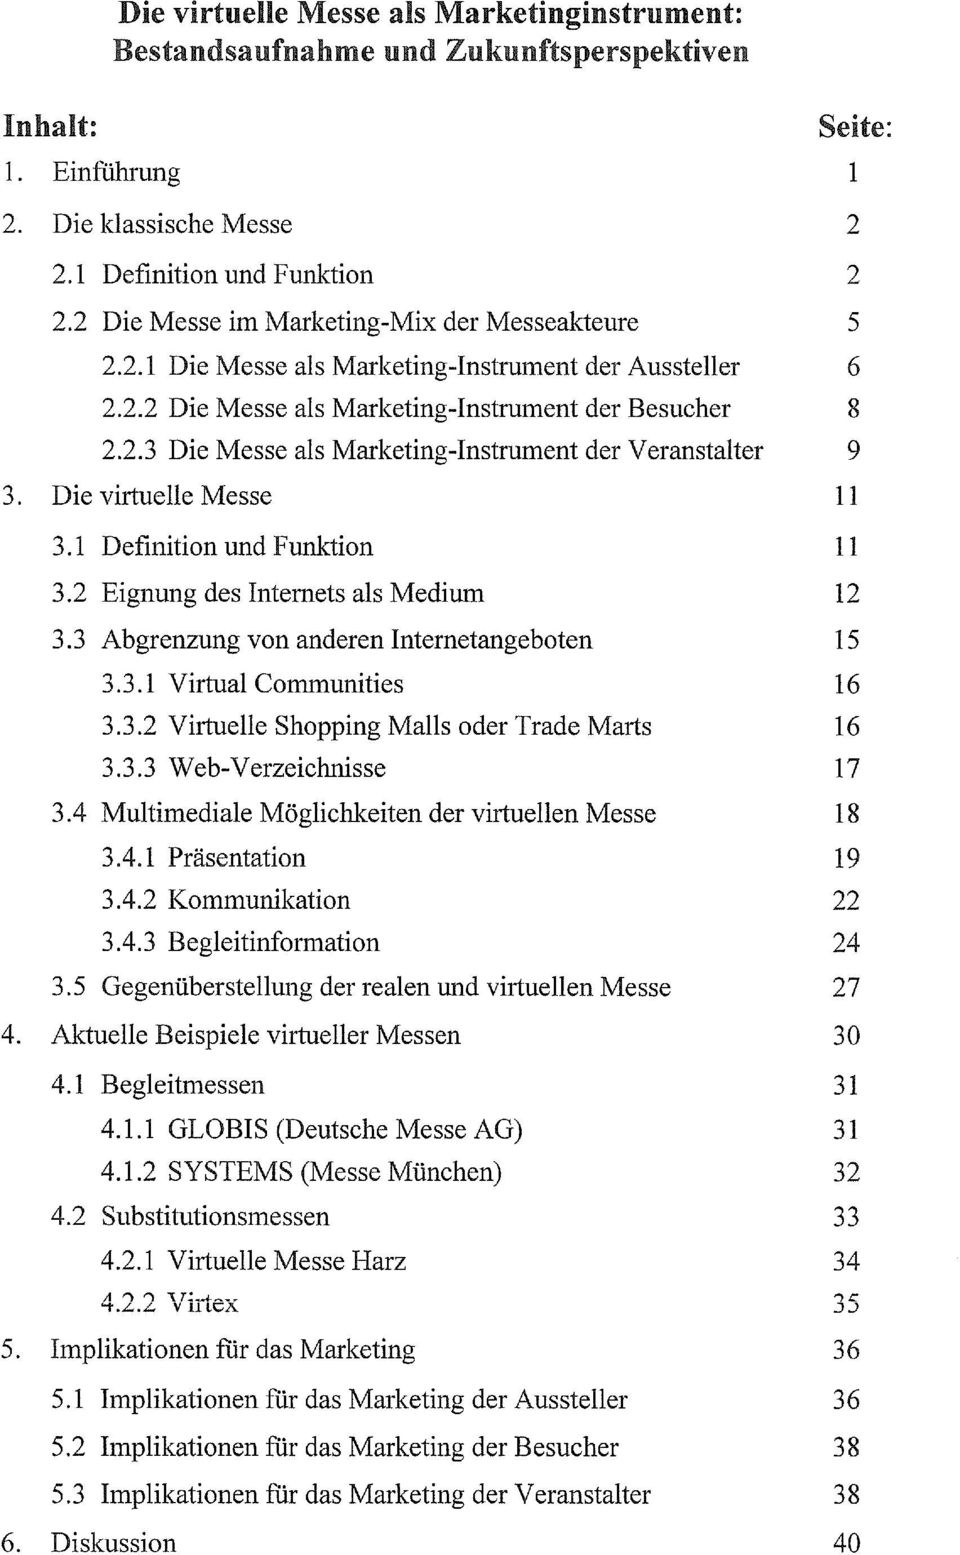 Die virtuelle Messe 11 3.1 Definition und Funktion 11 3.2 Eignung des Intemets als Medium 12 3.3 Abgrenzung von anderen Internetangeboten 15 3.3.1 Virtual Communities 16 3.3.2 Virtuelle Shopping Malls oder Trade Marts 16 3.